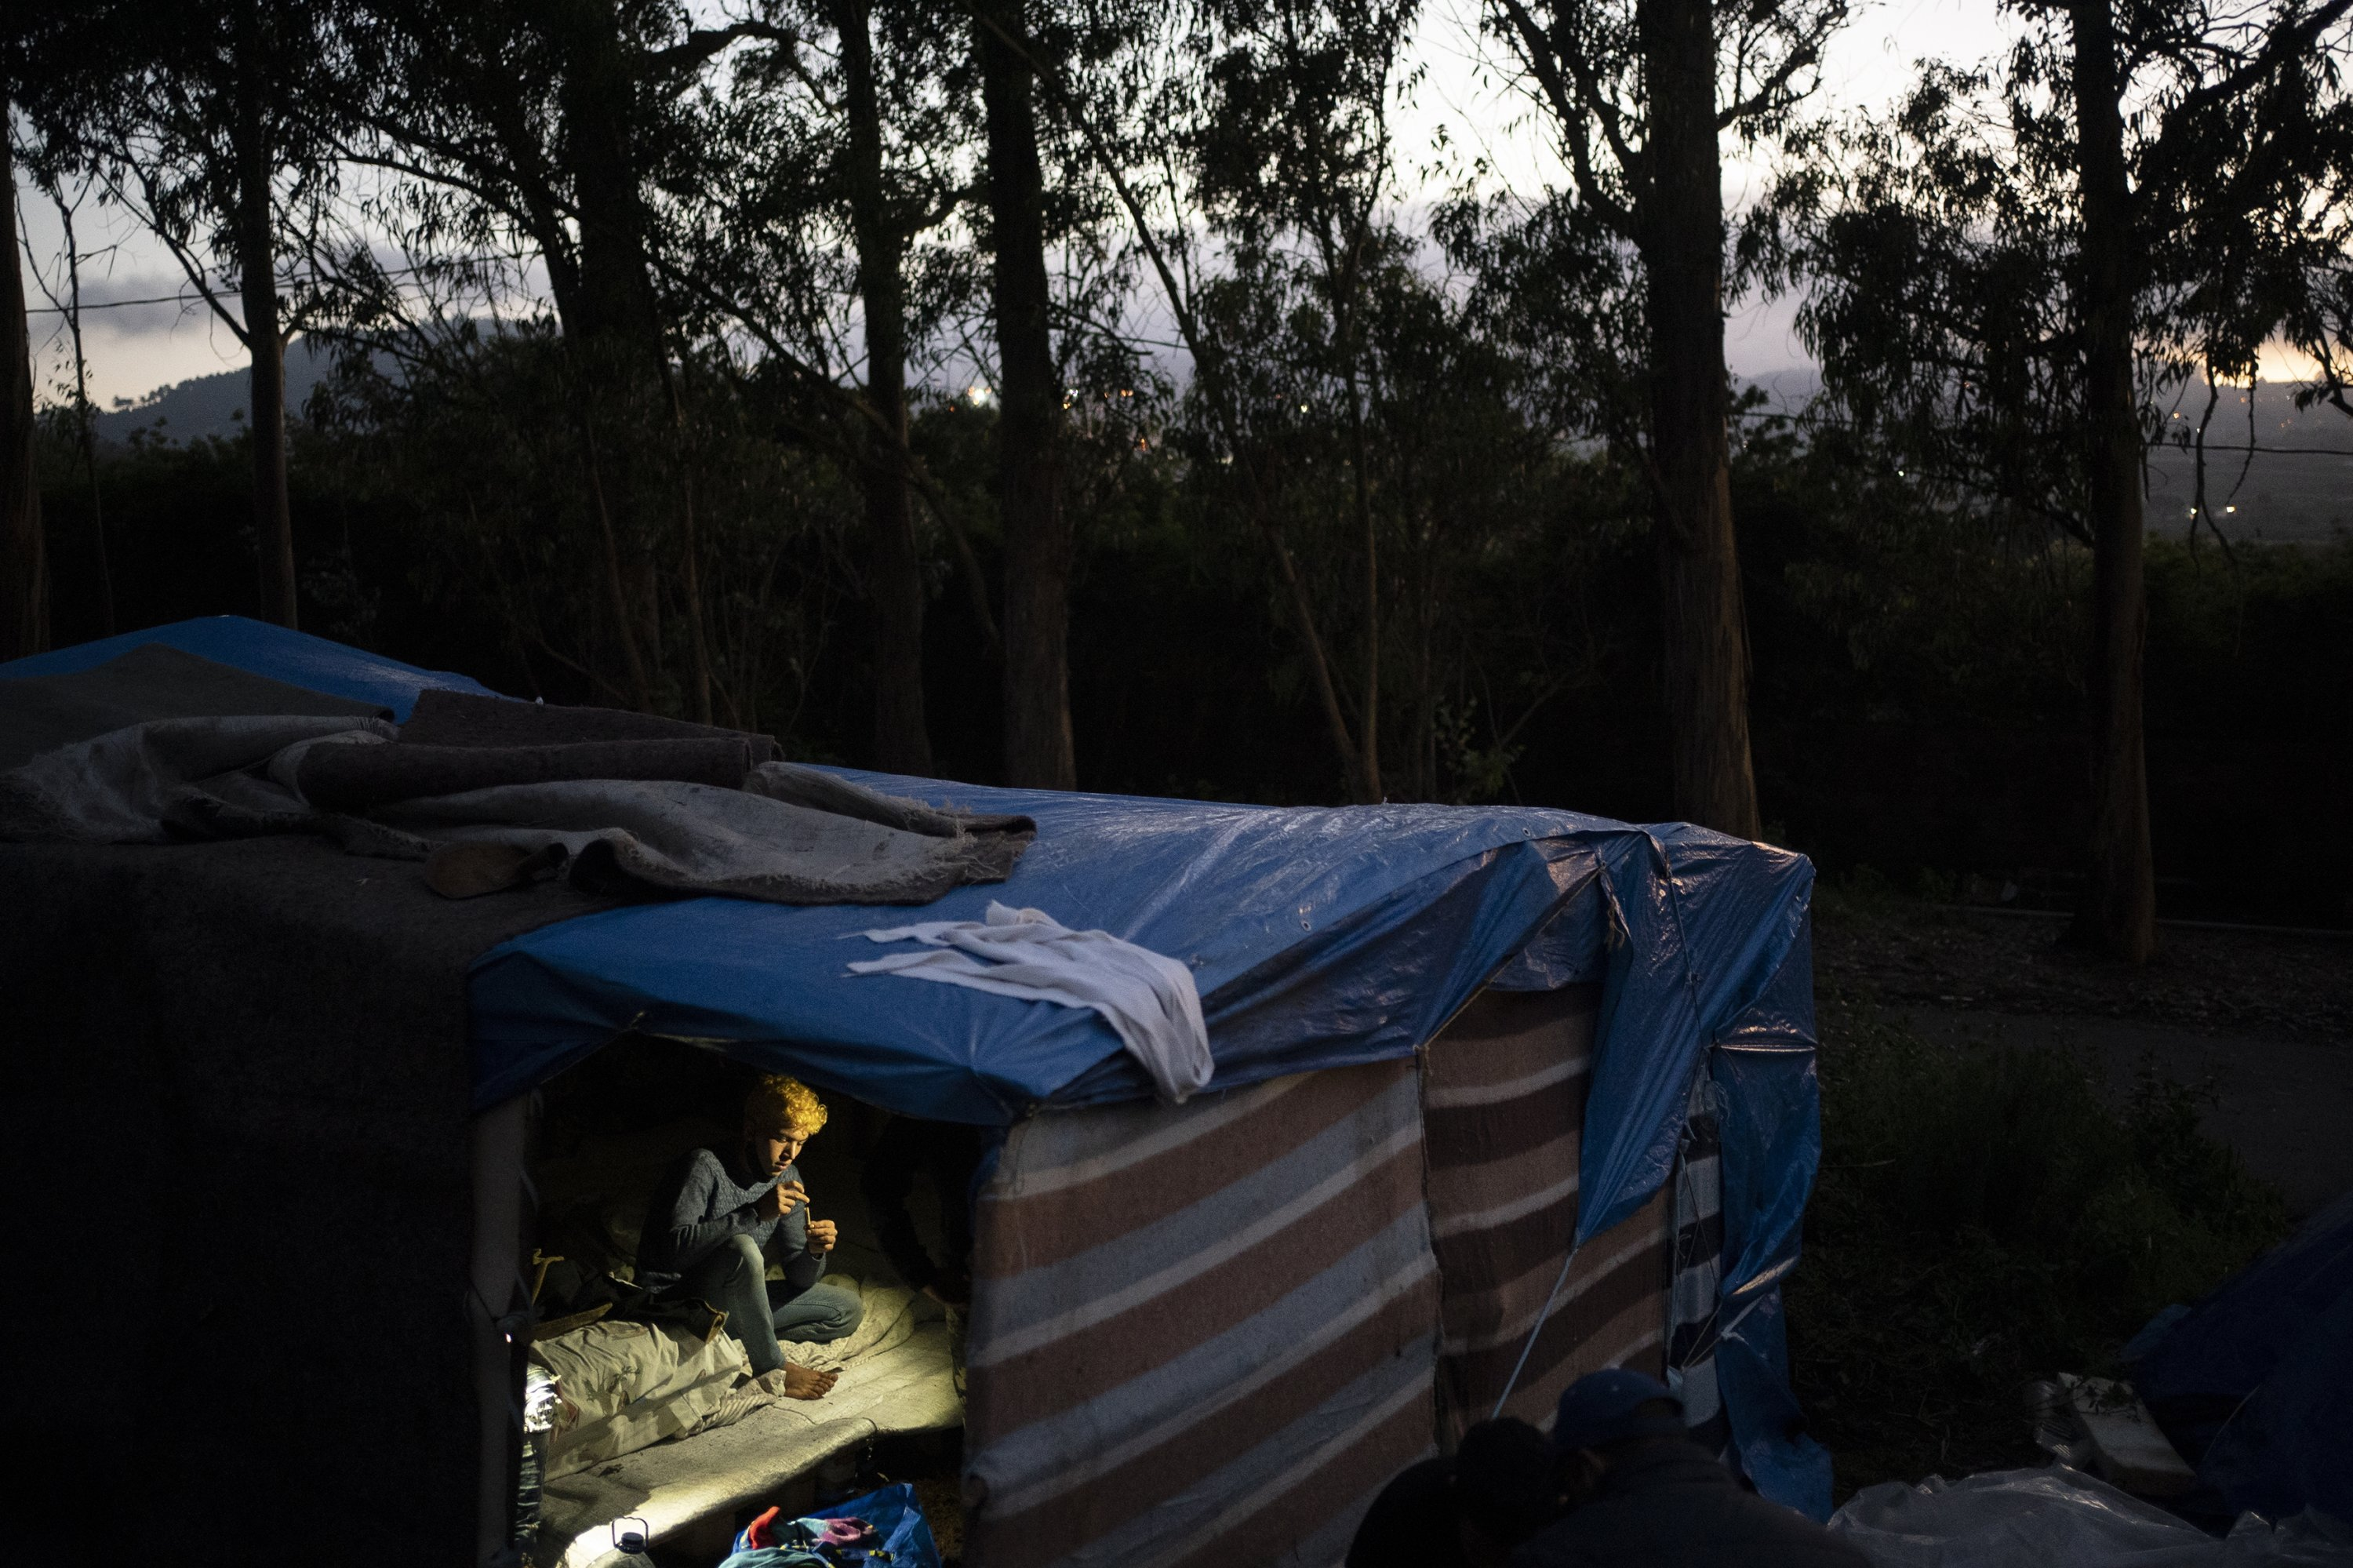 A migrant rests in a makeshift shelter in Las Raices camp in San Cristobal de la Laguna on the Canary Island of Tenerife, Spain, March 17, 2021. (AP Photo)